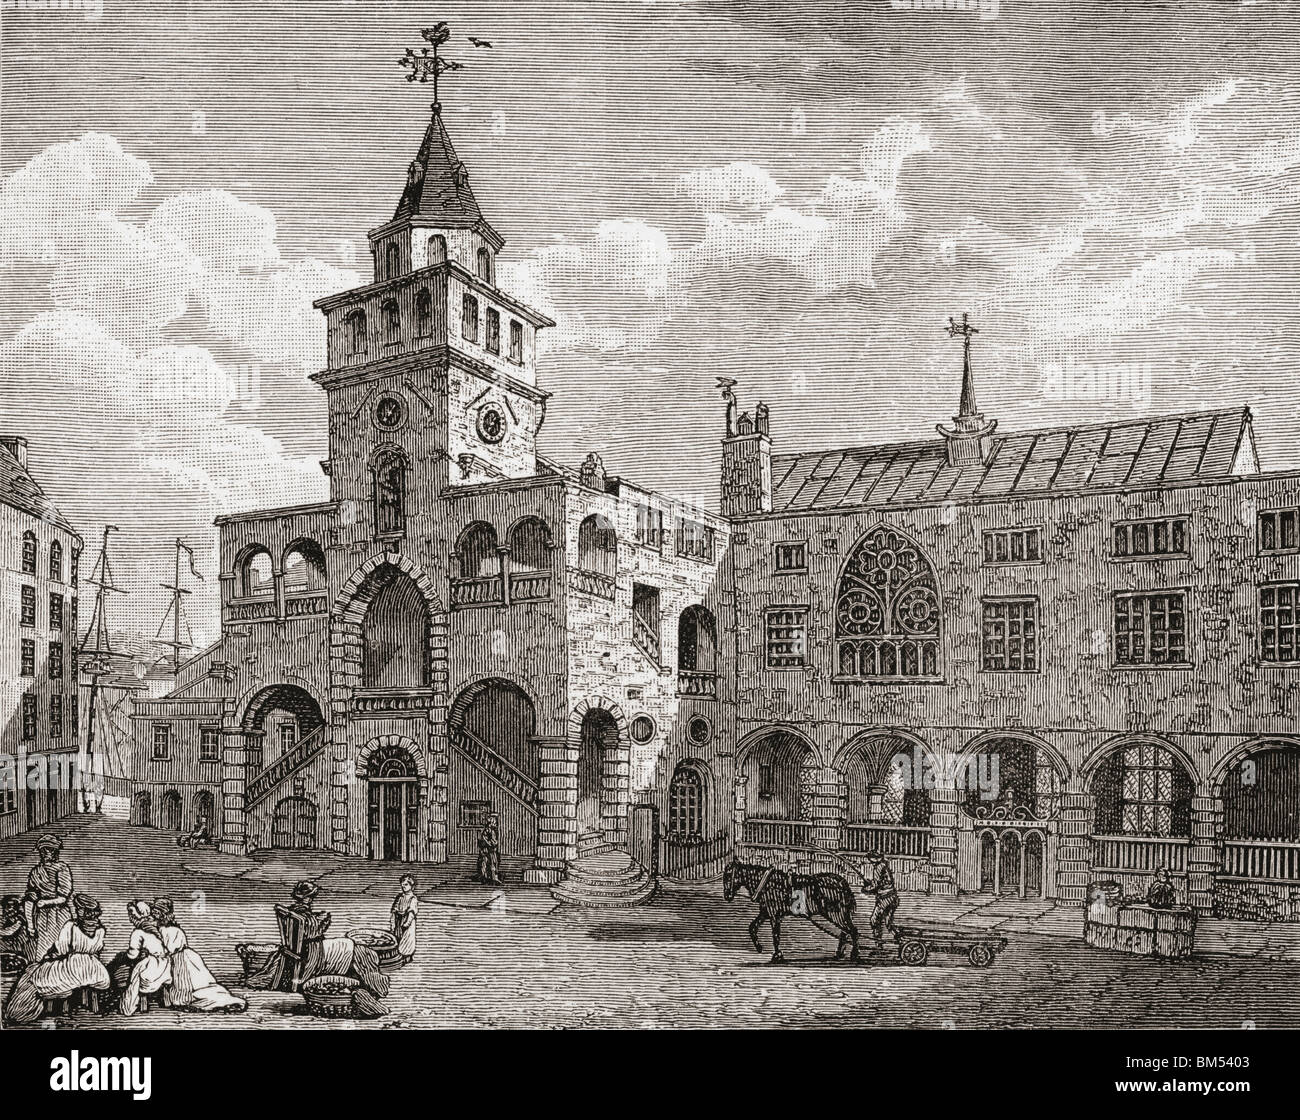 The Exchange, Newcastle-on-Tyne, England in the 17th century. - Stock Image